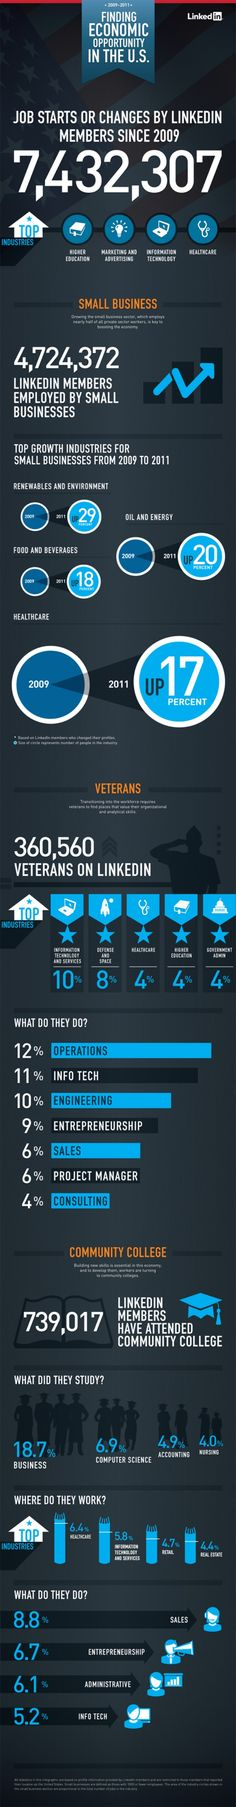 4.7 Million LinkedIn Users Are Employed by Small Businesses [INFOGRAPHIC]